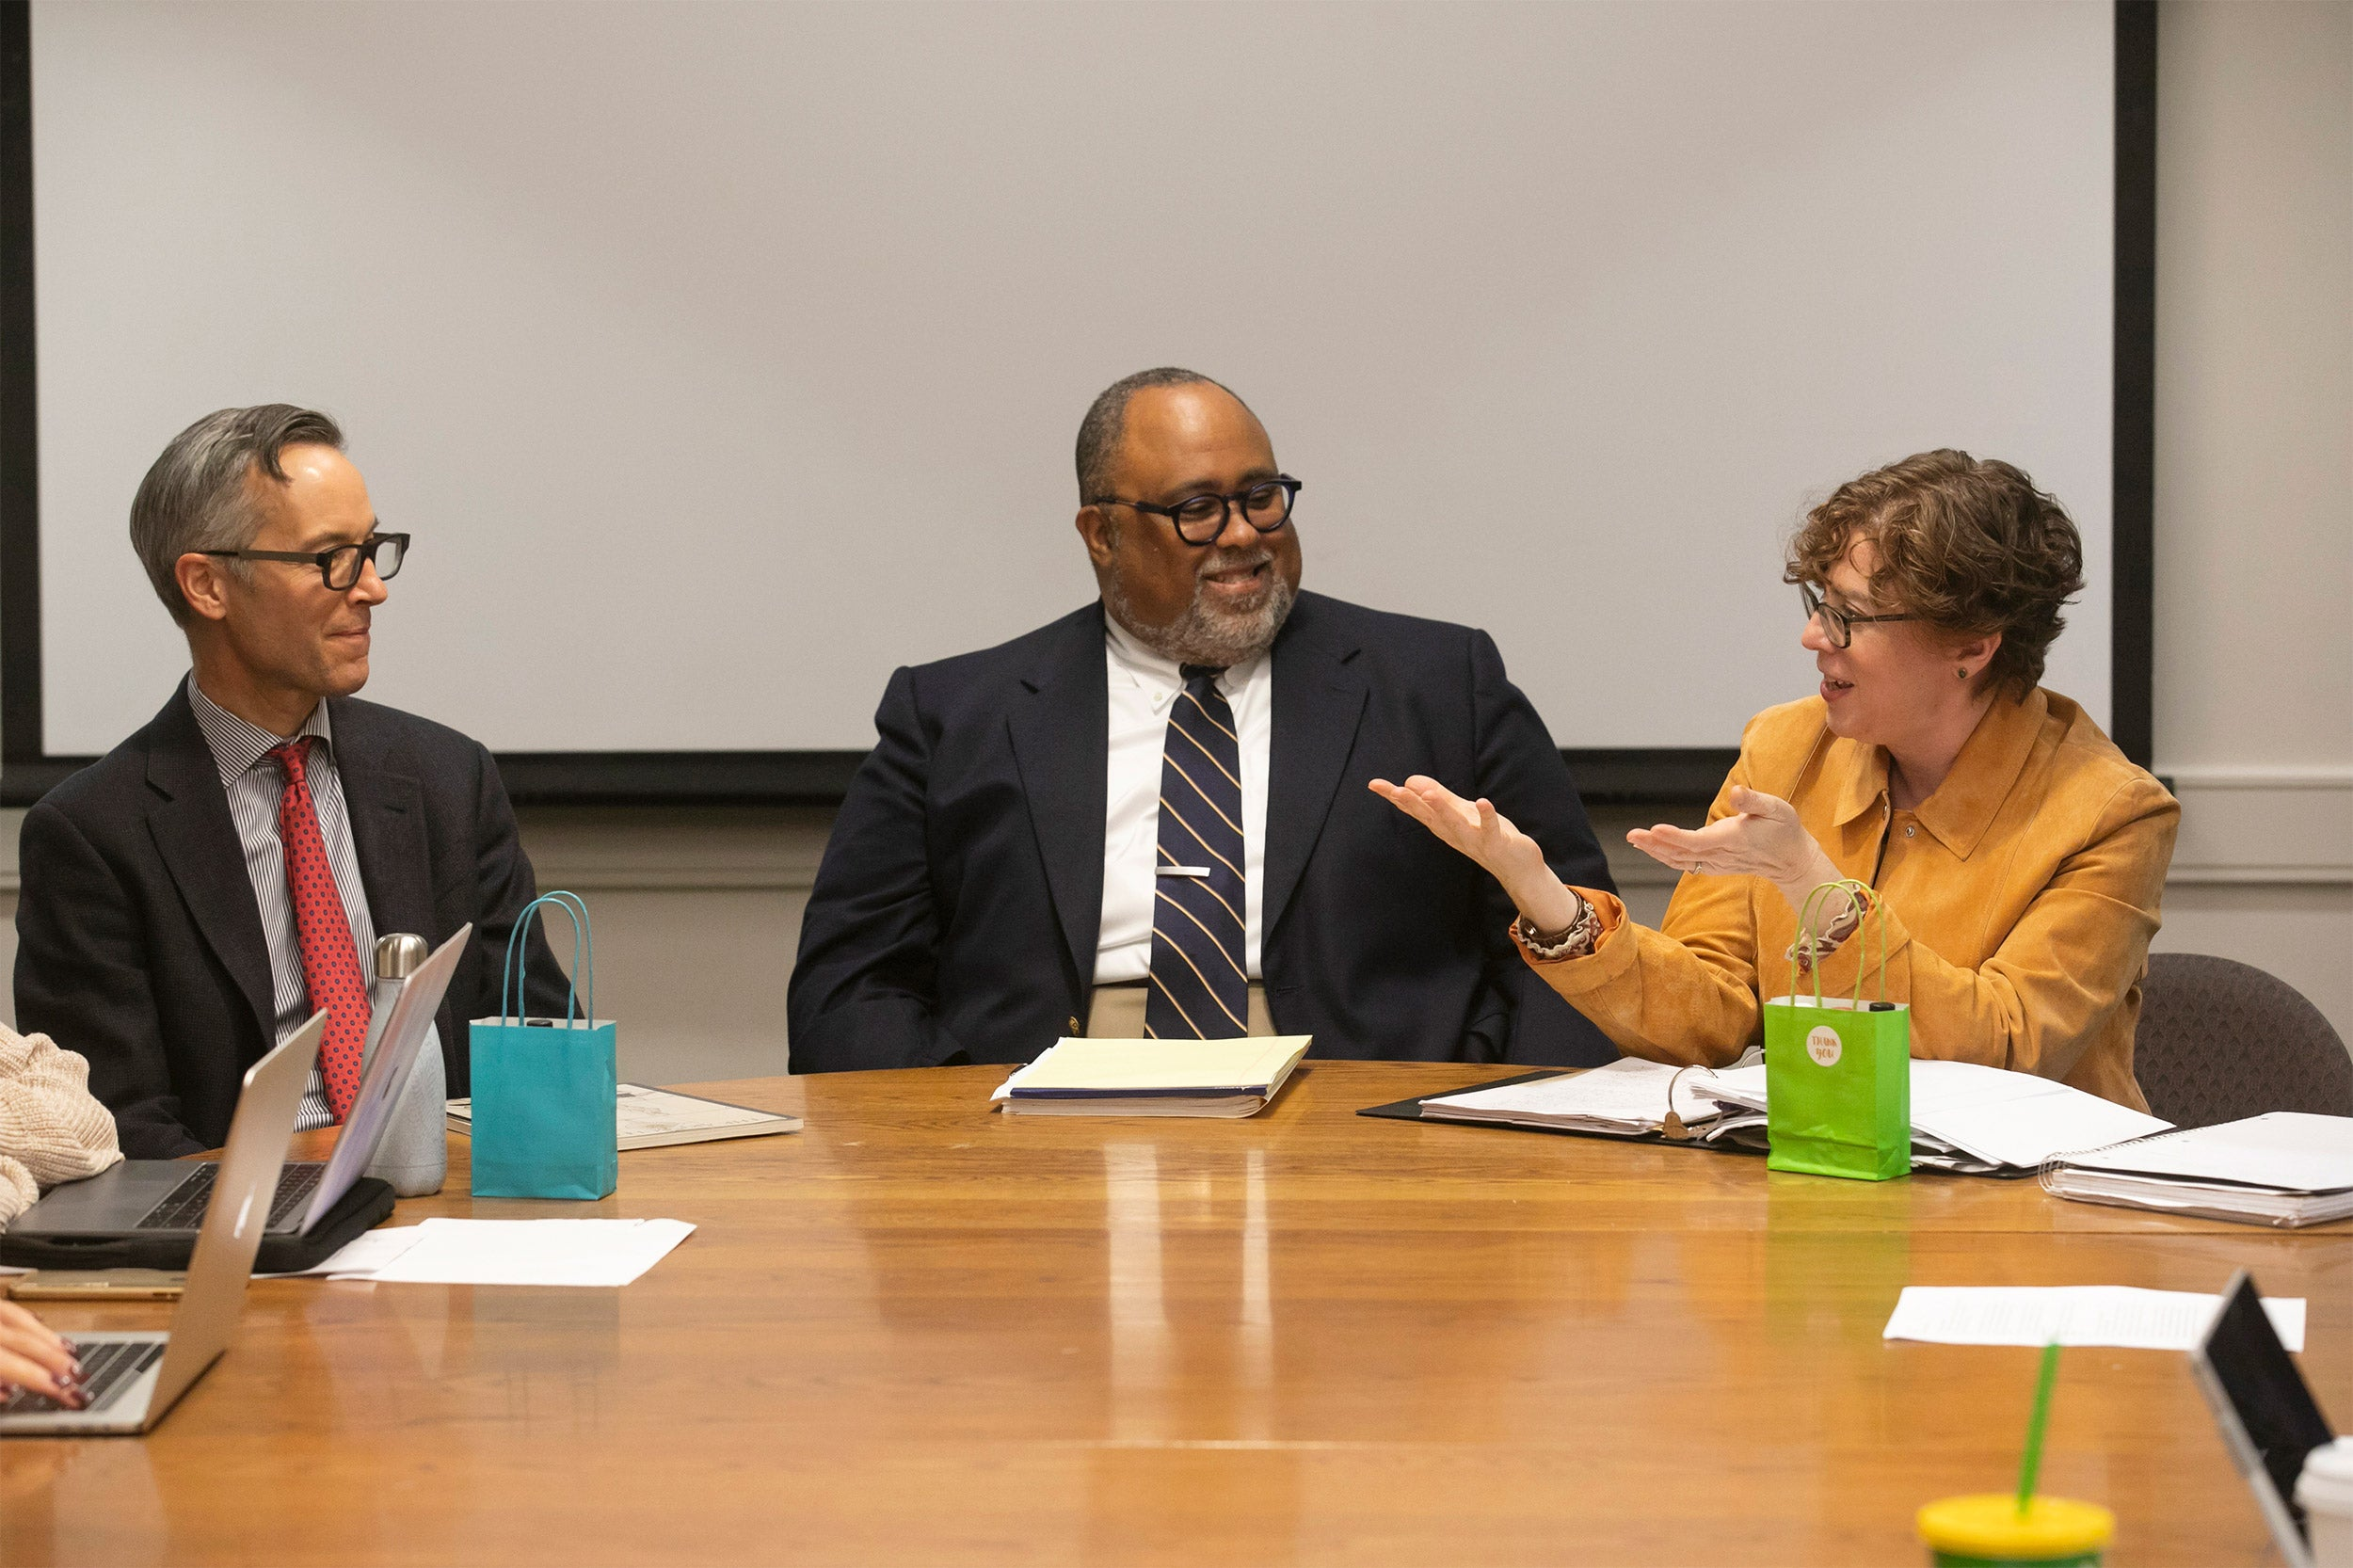 Professor Robin Bernstein speaking with Deans Robin Kelsey and Lawrence Bobo at a conference table.